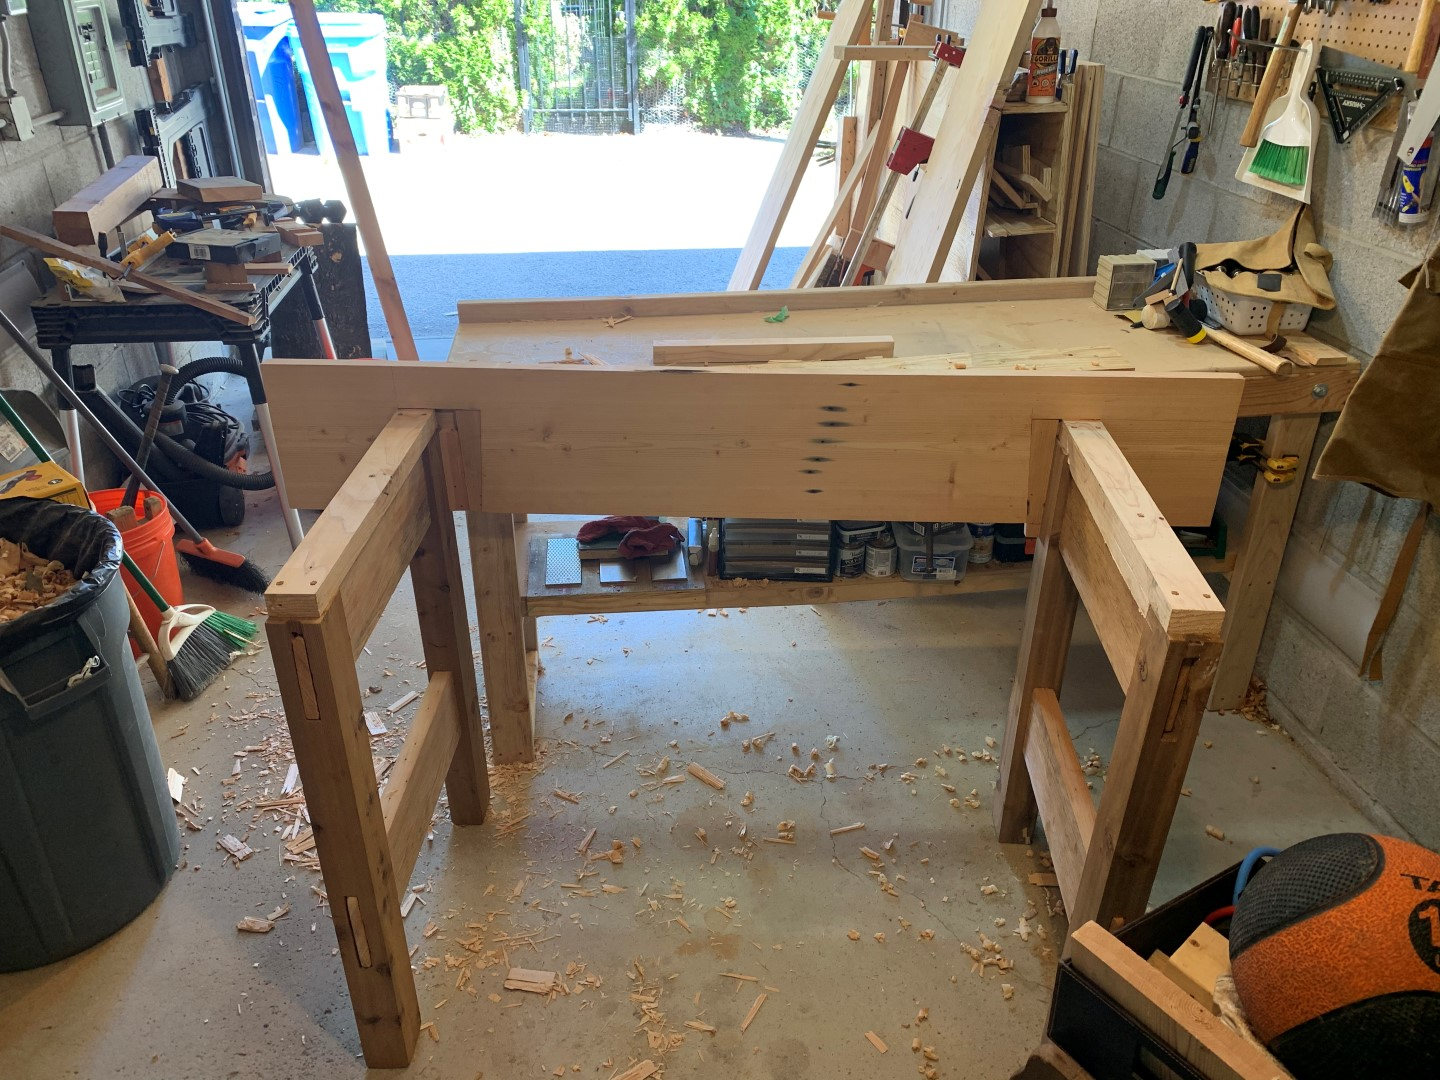 jelster-workbench-construction-1749